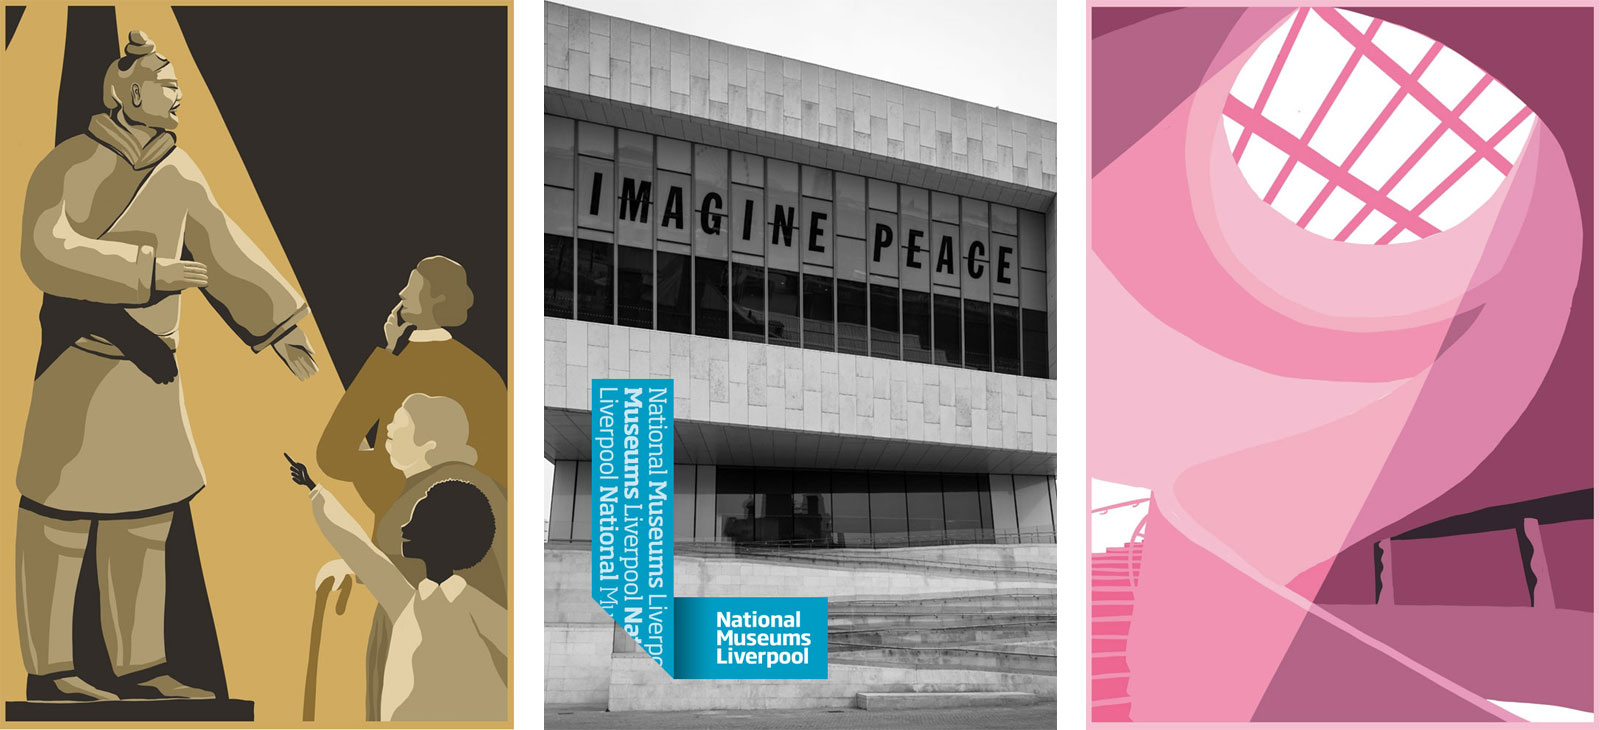 IGOO Appointed Website Design Agency for National Museums Liverpool